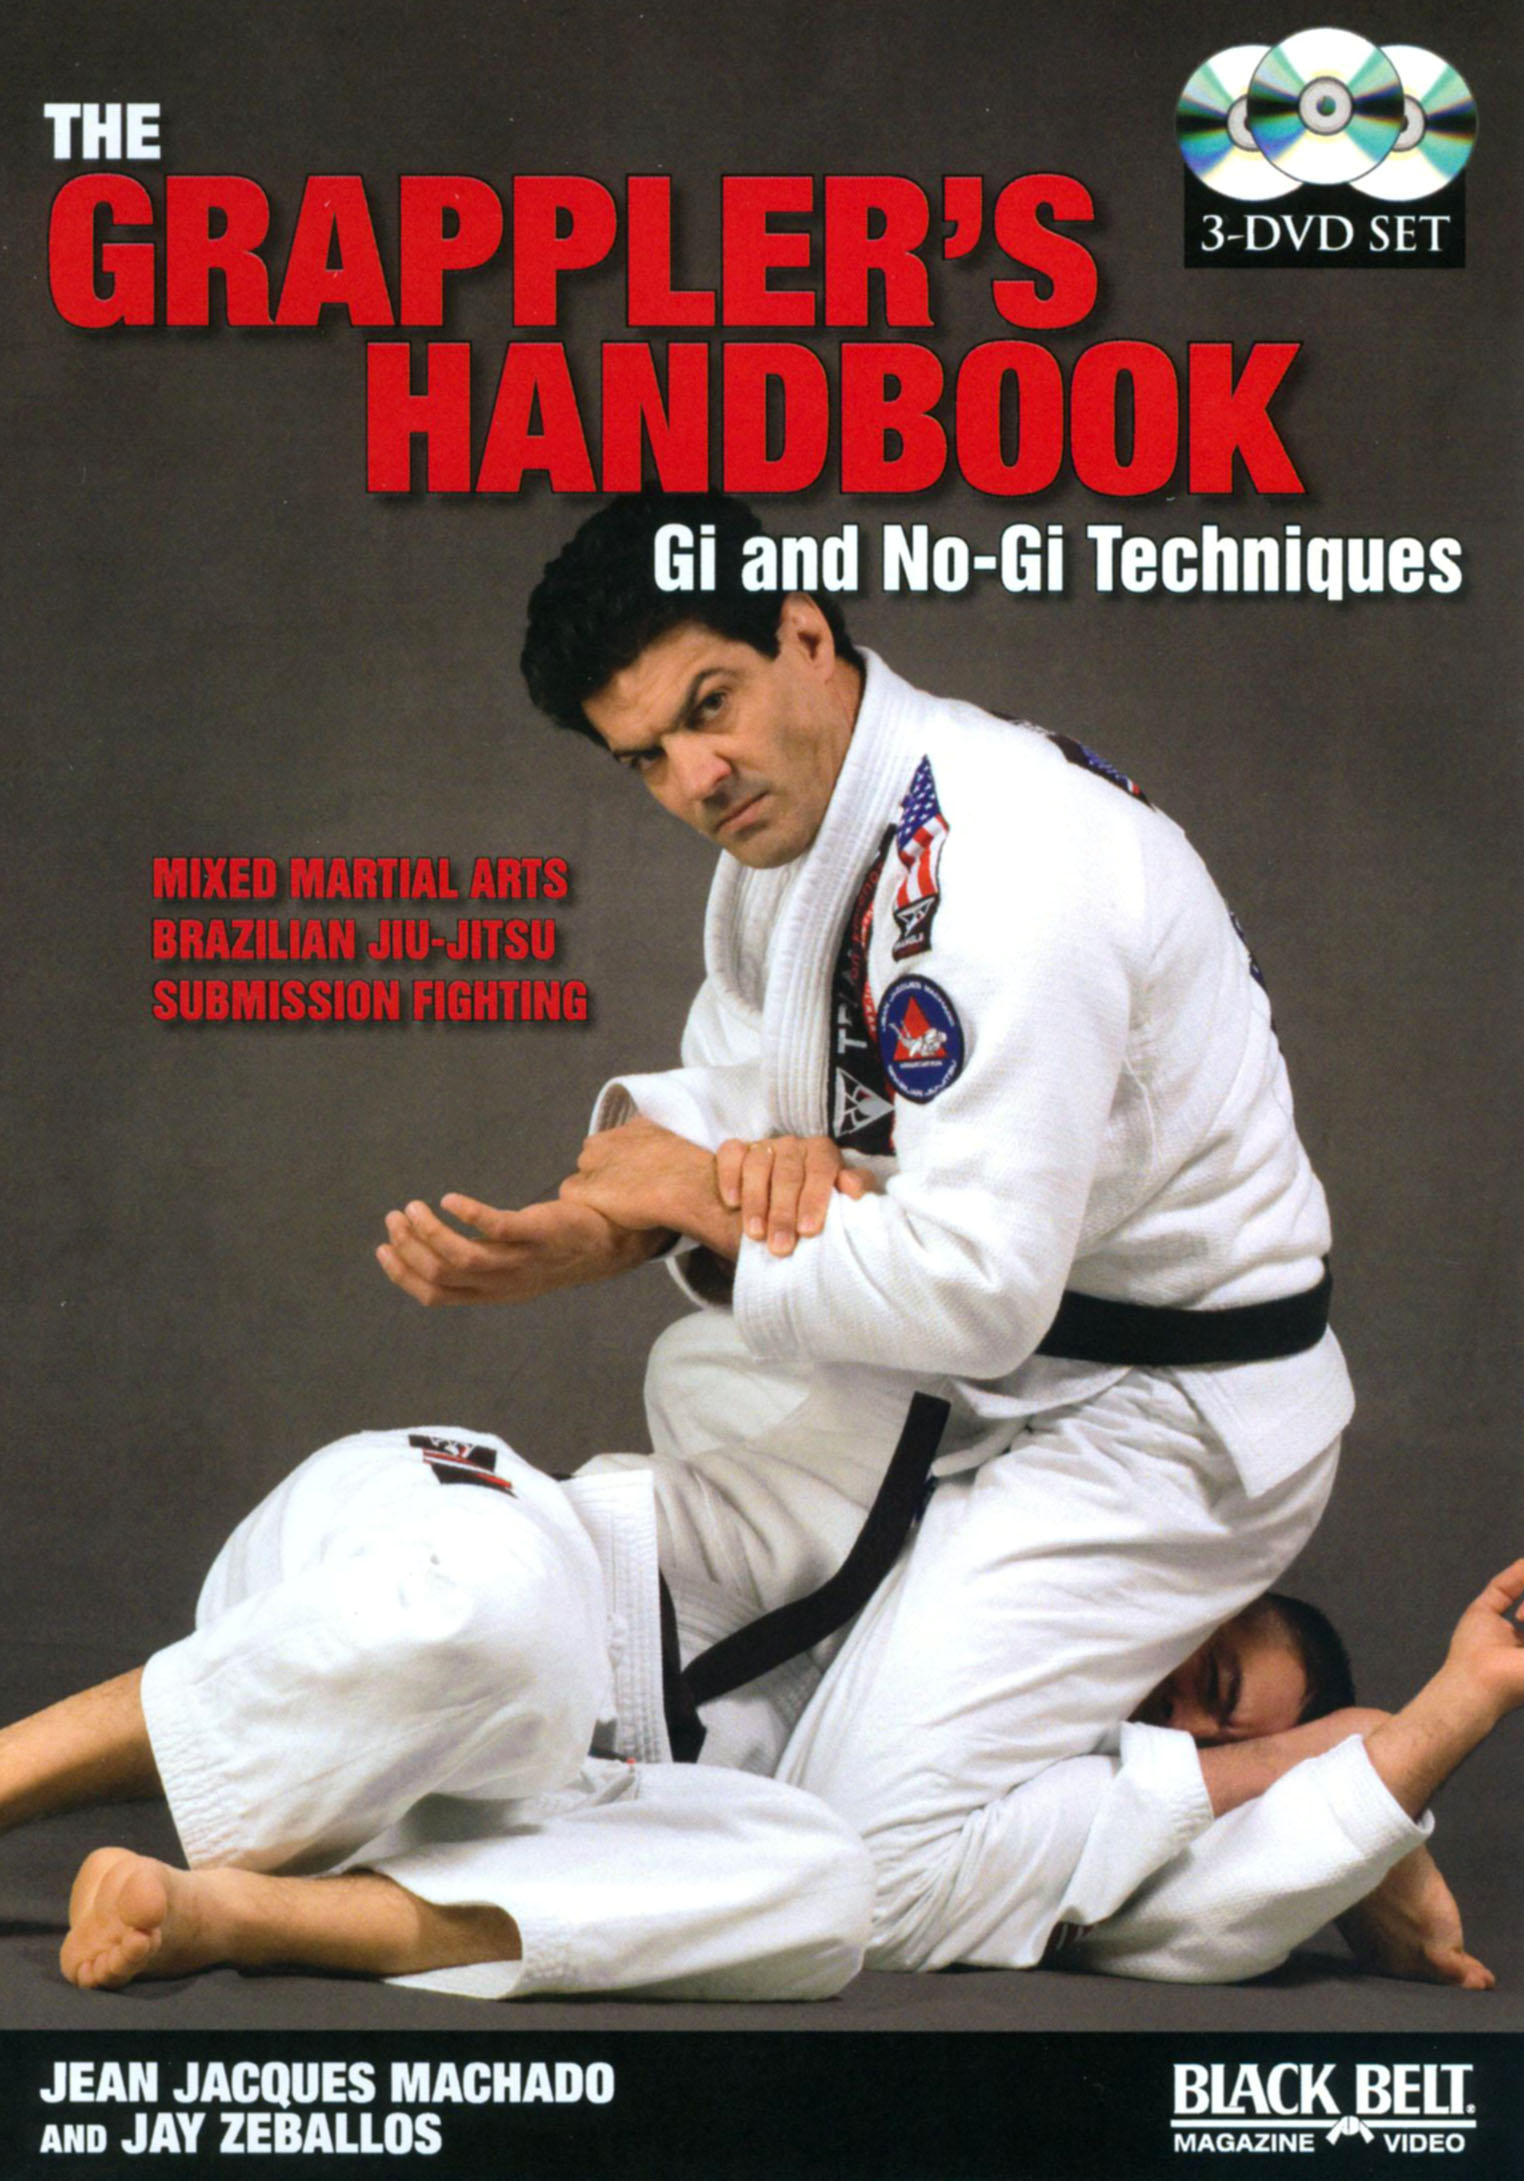 The Grappler's Handbook: Gi and No-Gi Techniques